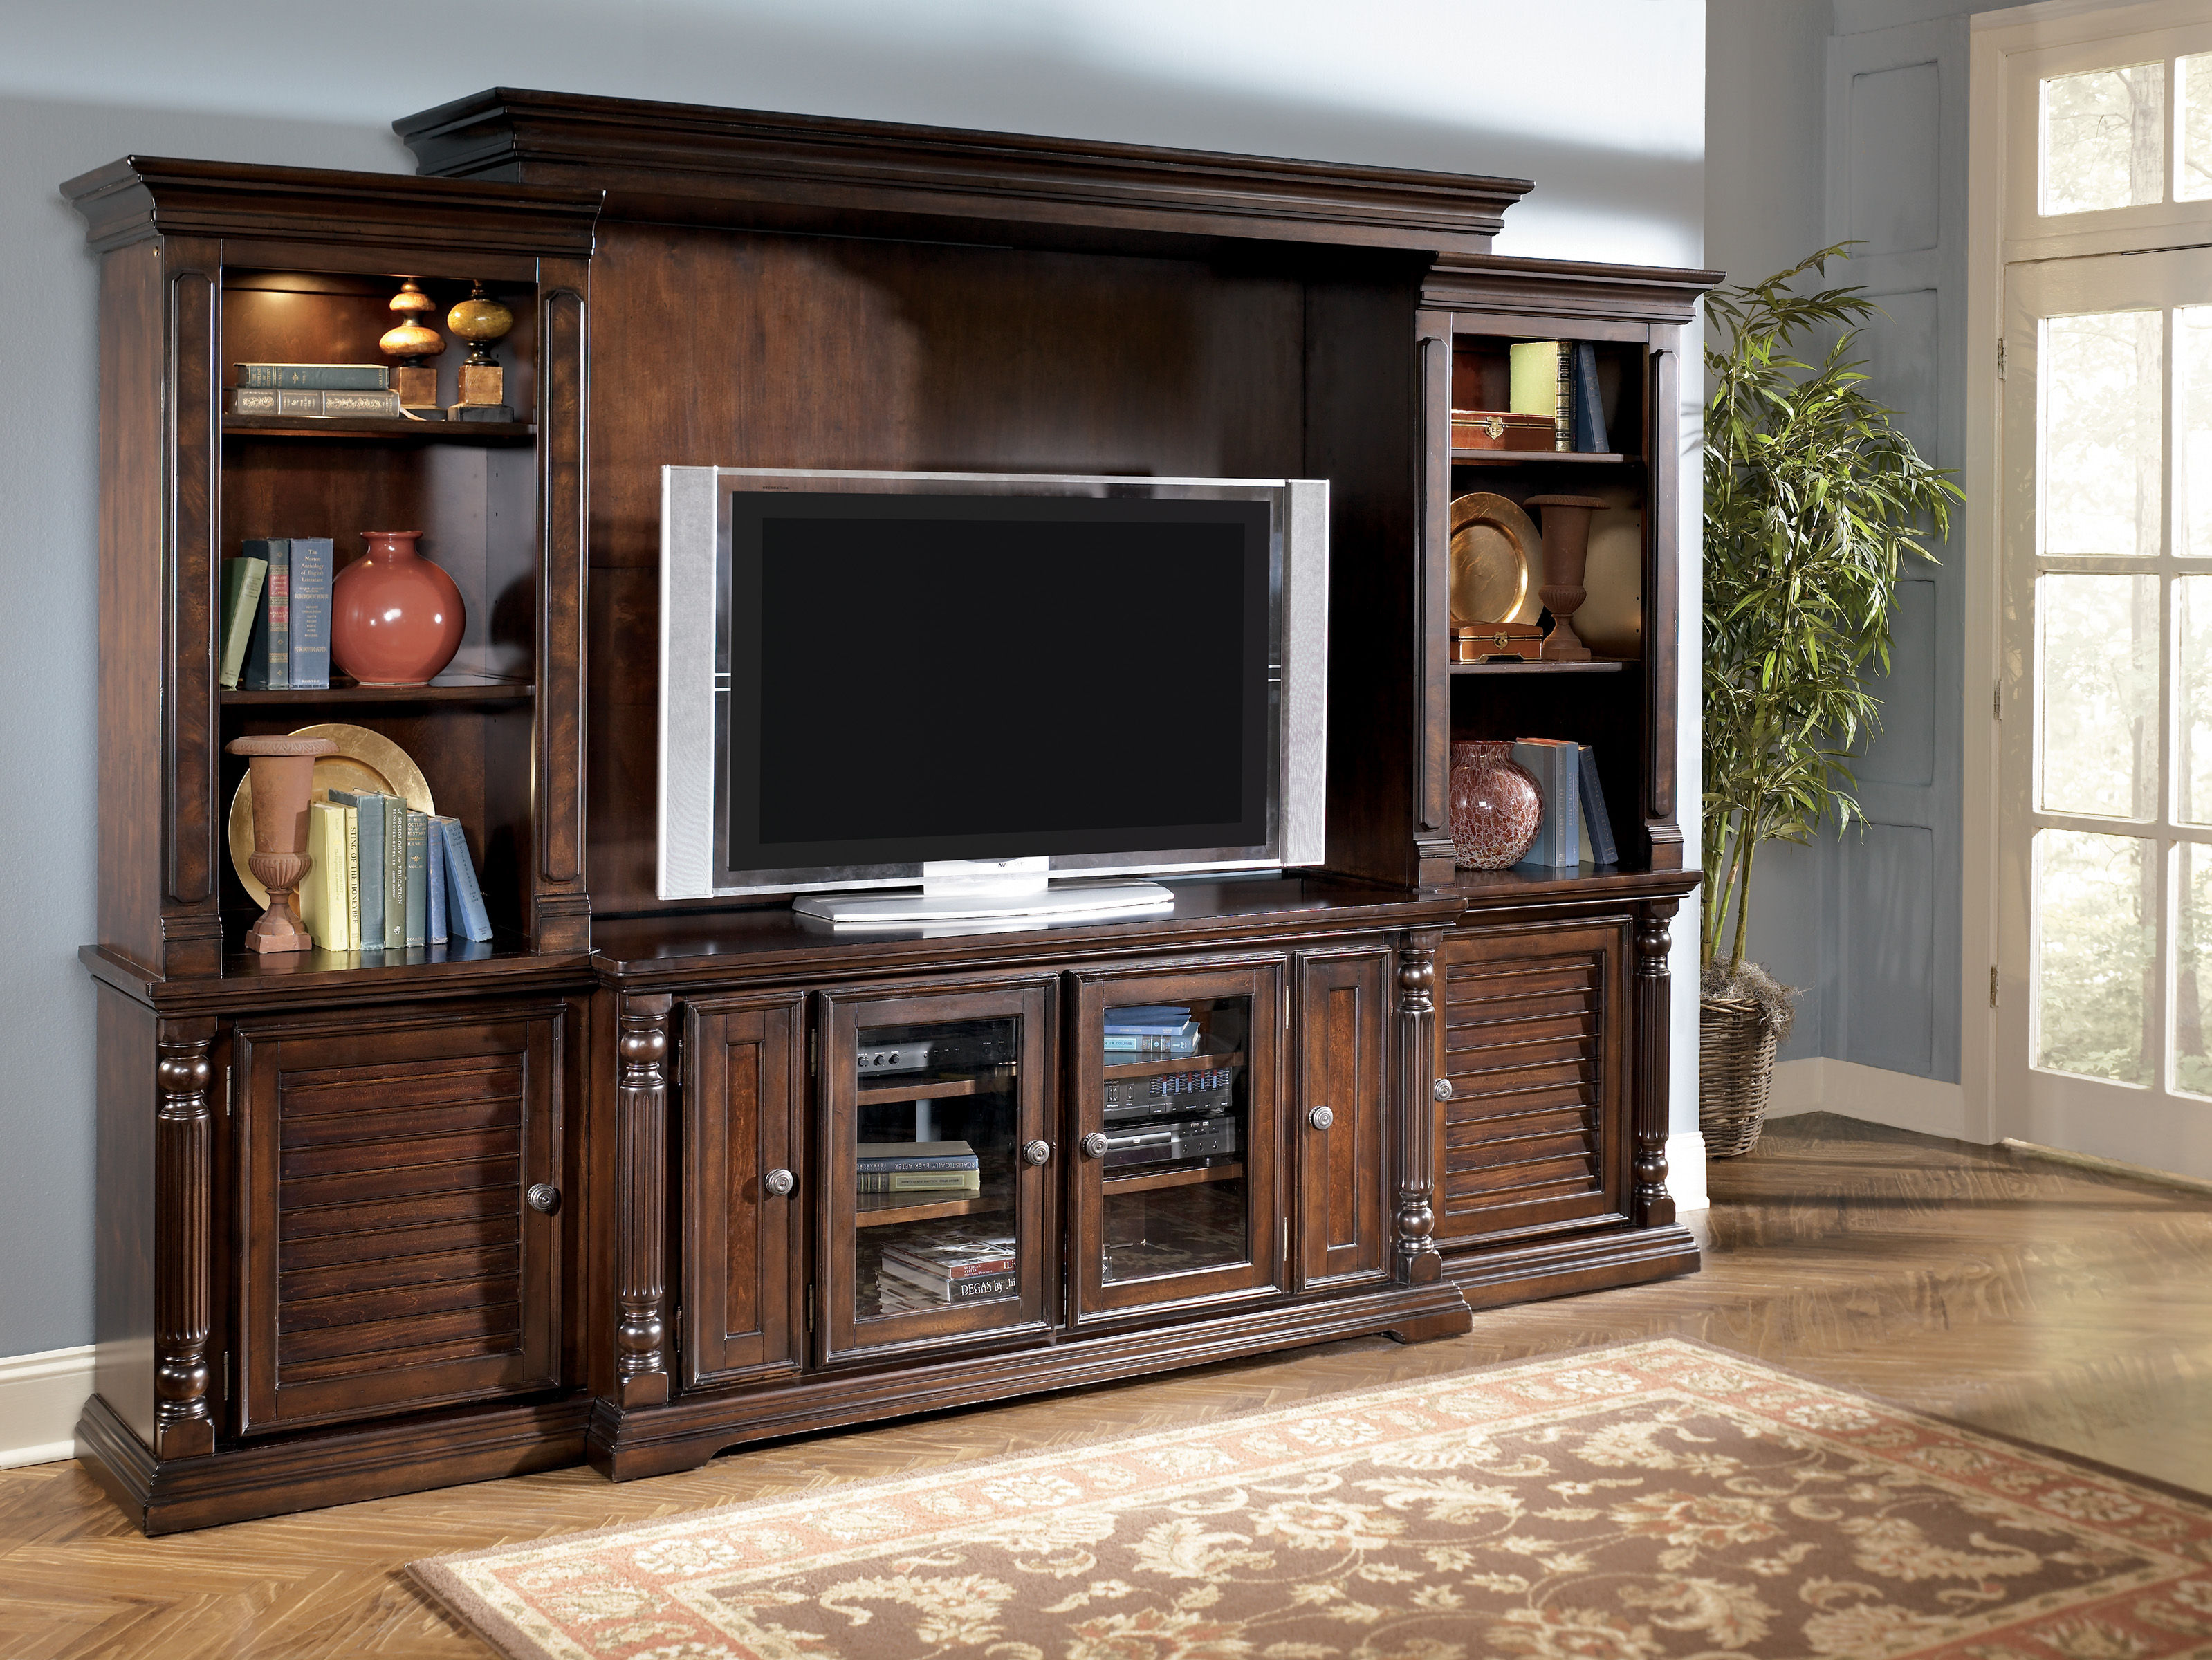 Key Town Traditional Dark Brown Wood Entertainment Center